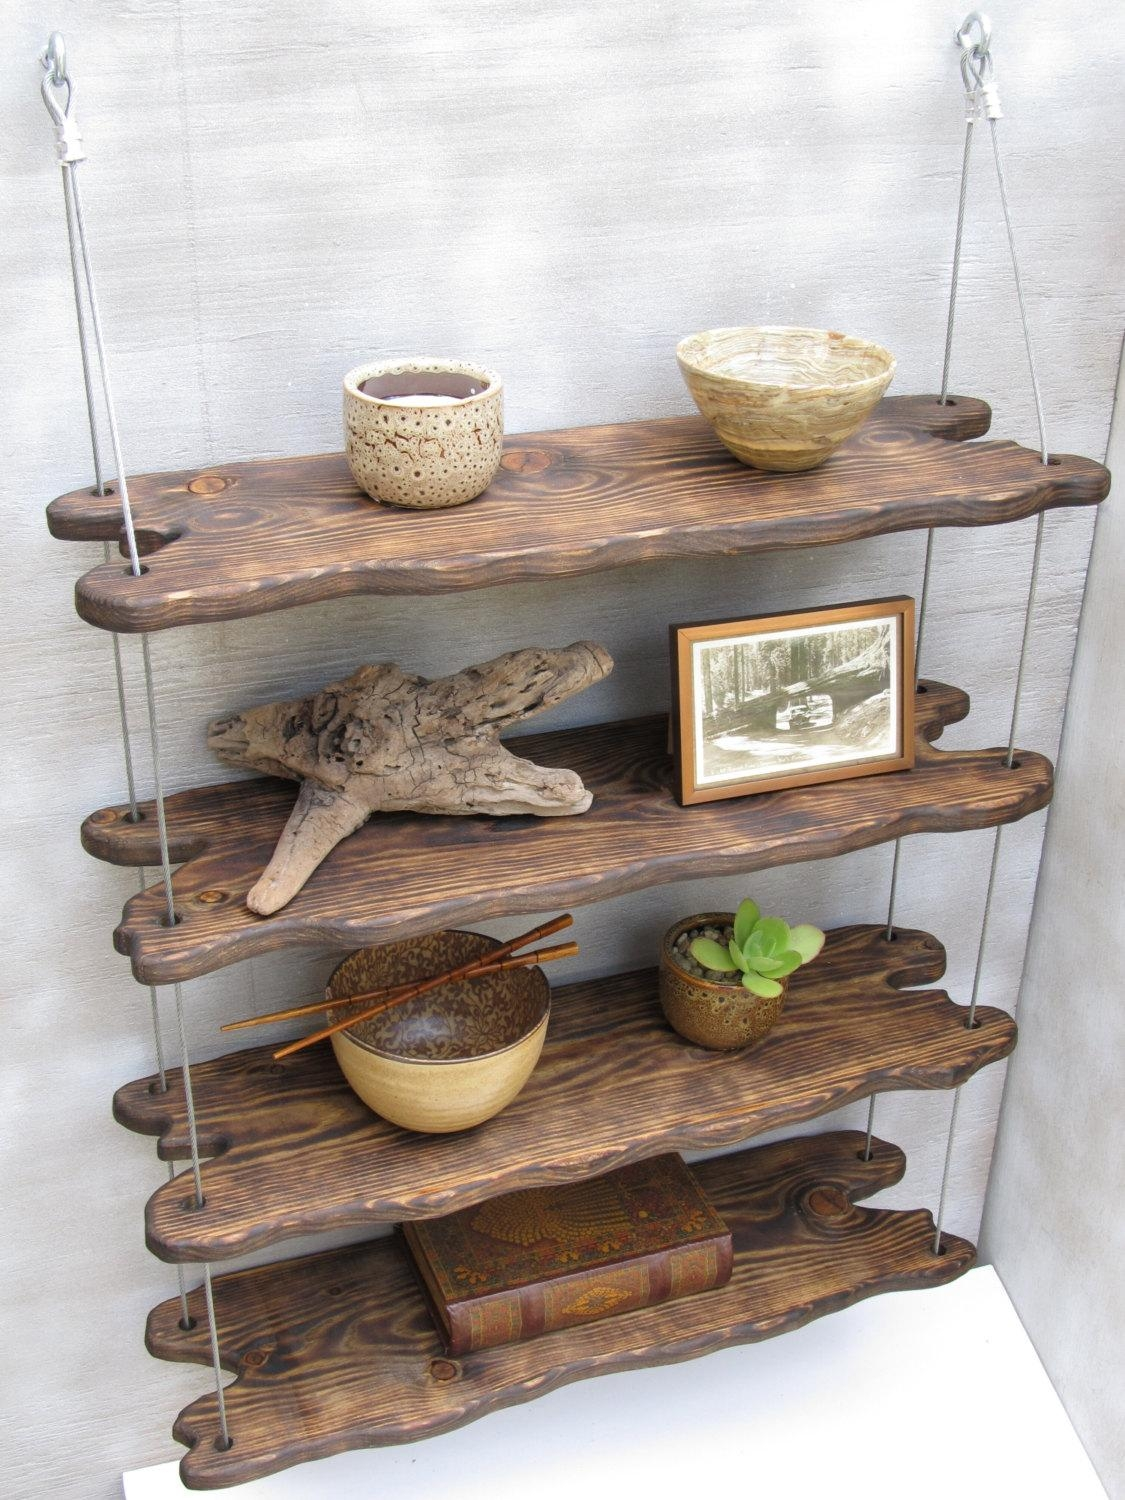 Wall Shelves Design: Reclaimed Driftwood Wall Shelves Diy Intended For Driftwood Wall Art For Sale (Image 20 of 20)